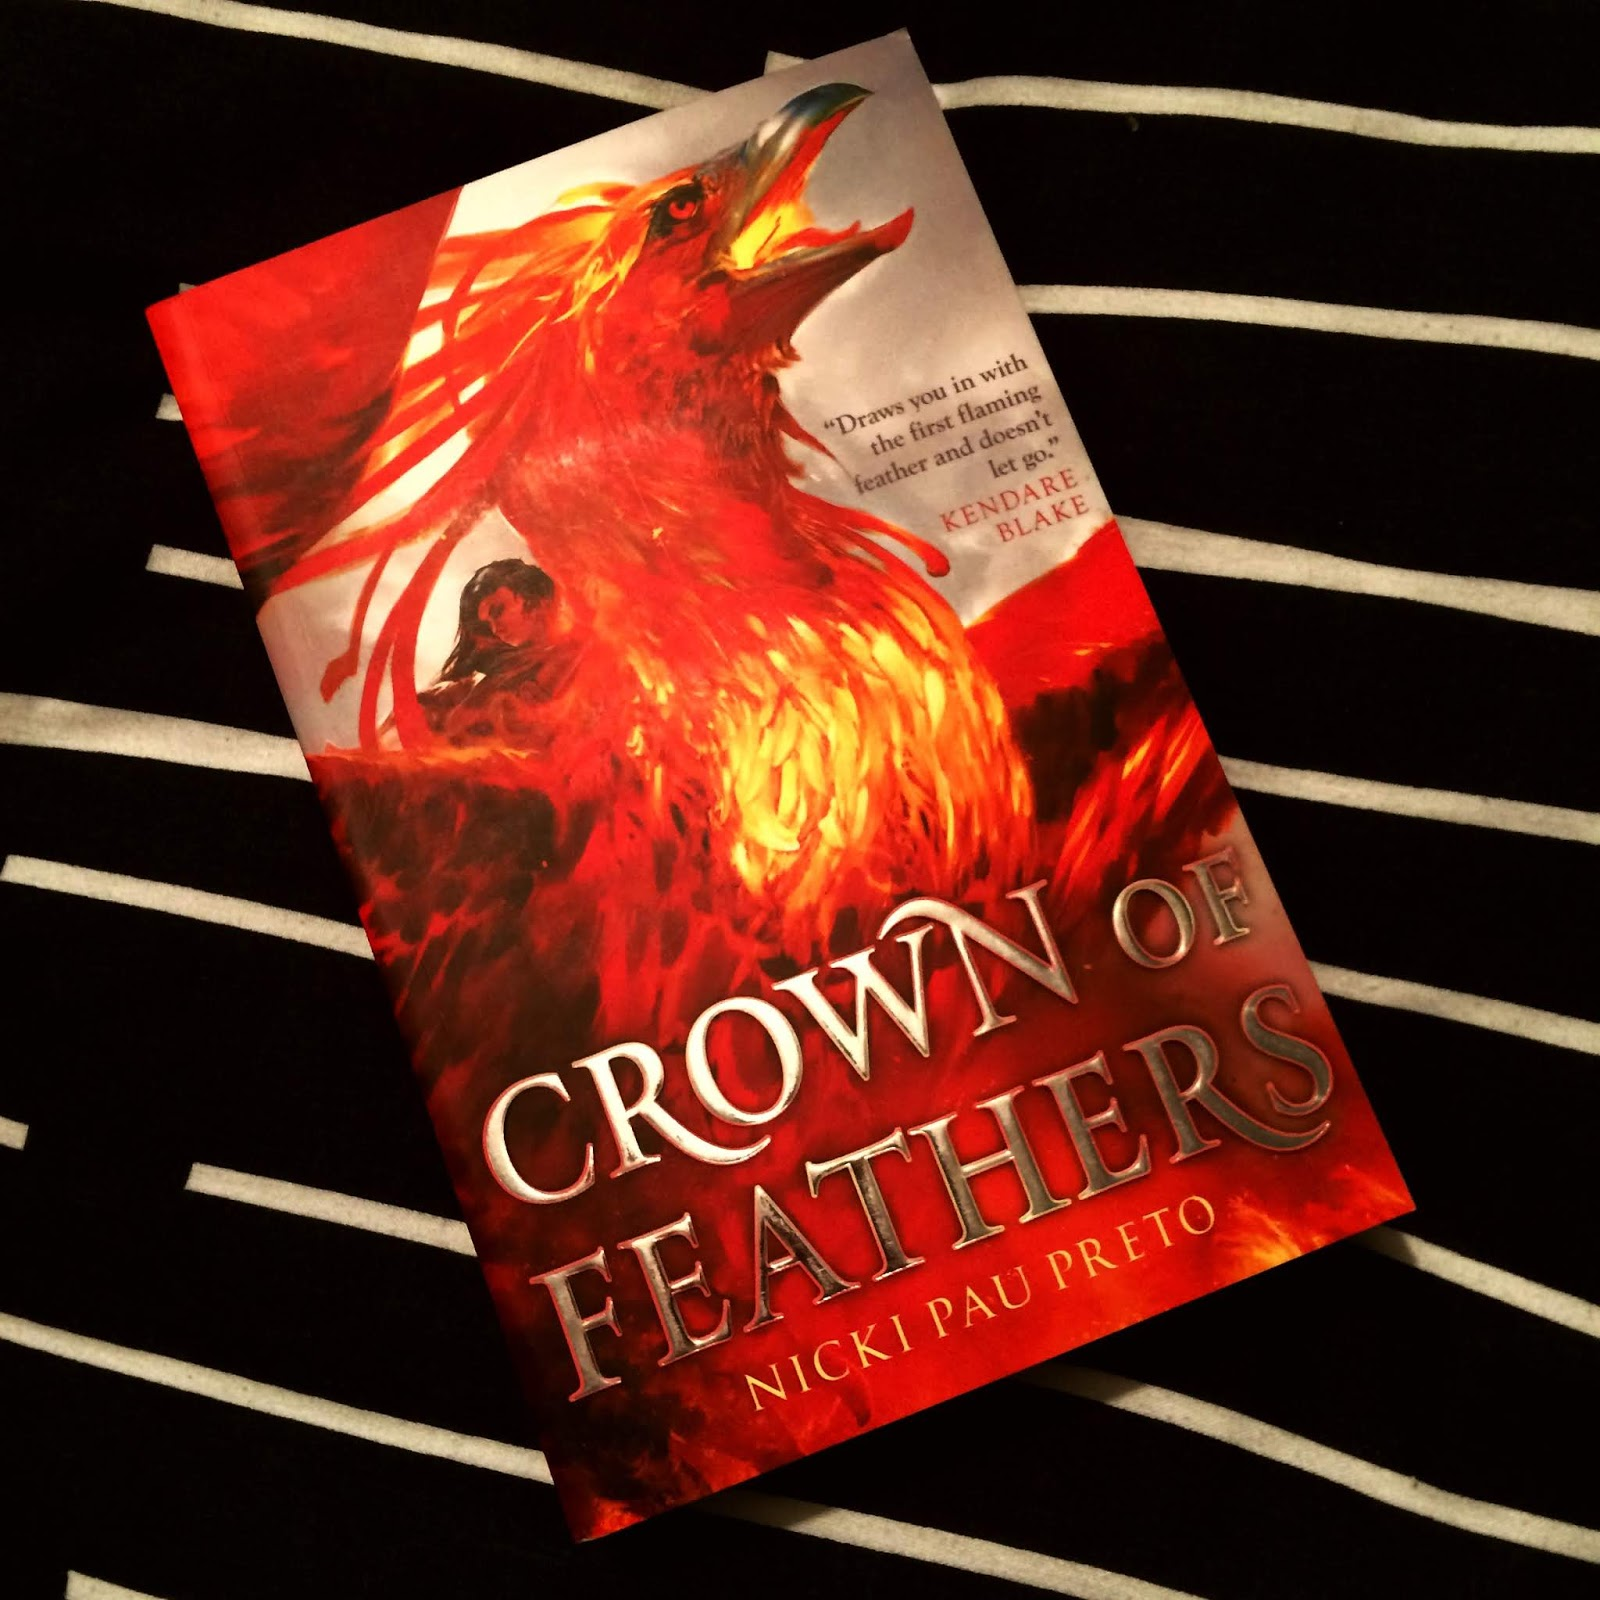 Crown of Feathers by Nicki Pau Preto